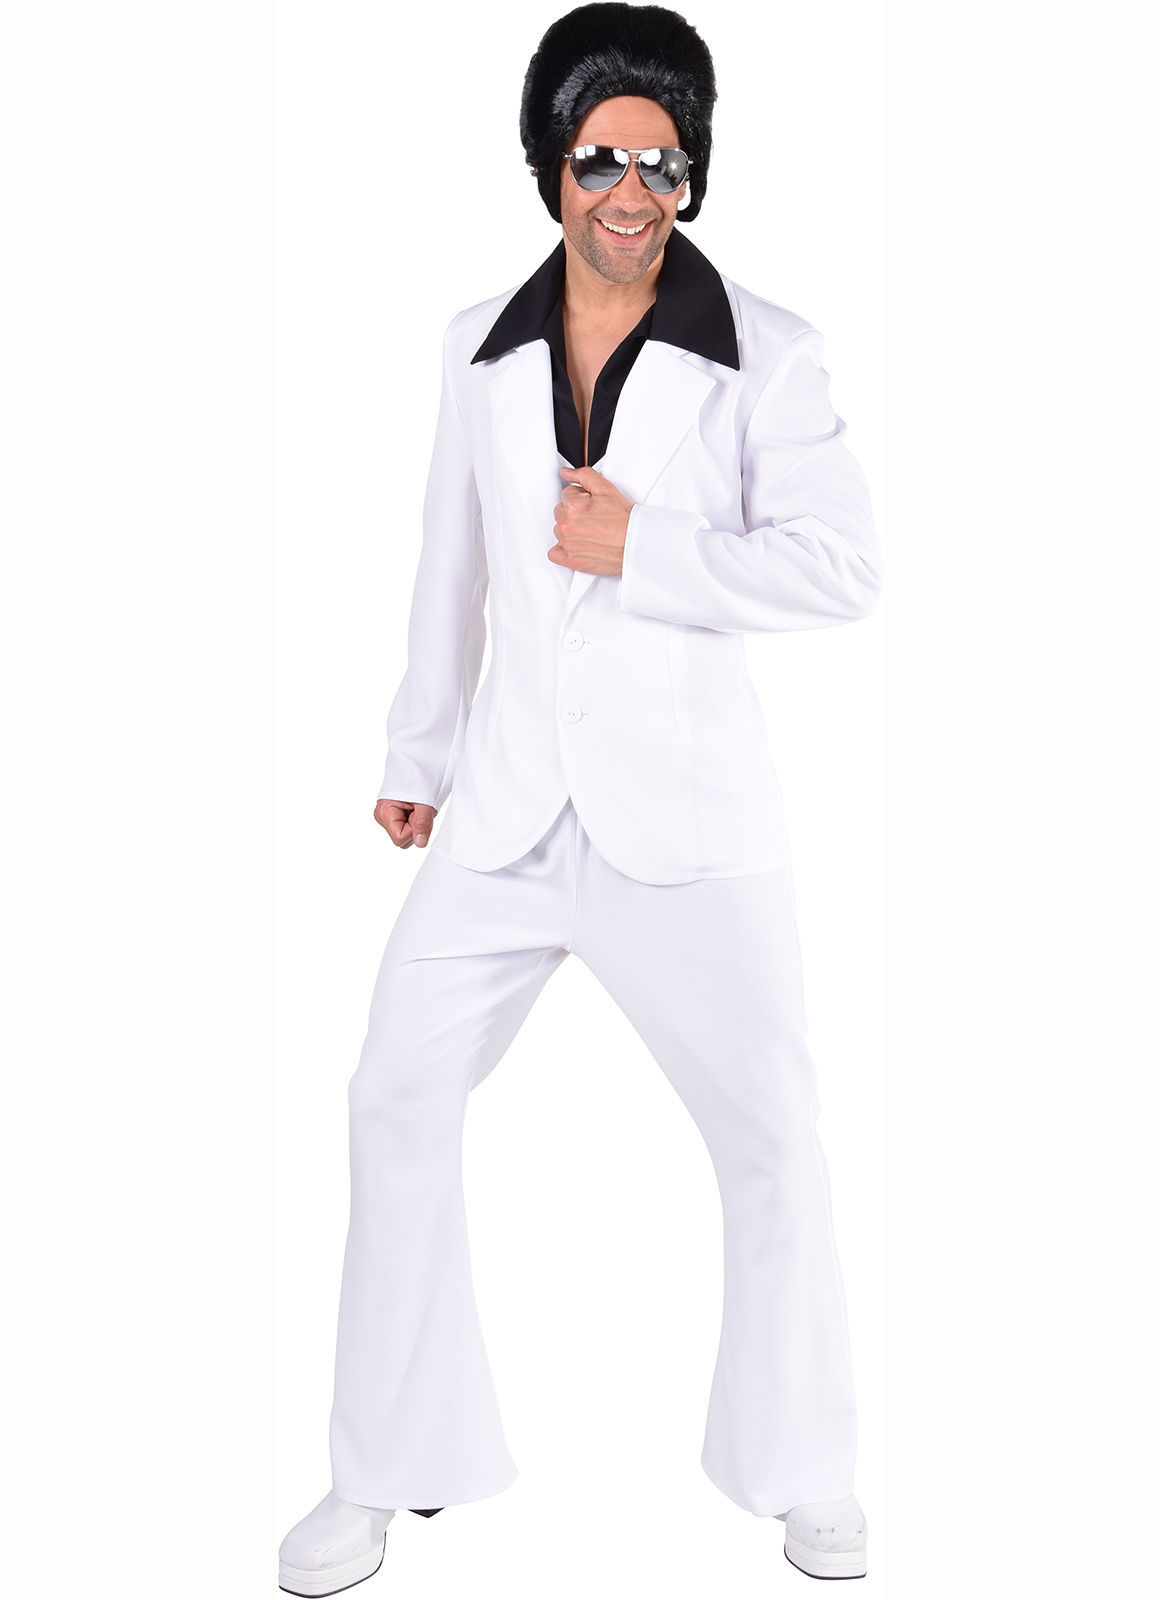 70's John Travolta Saturday Night Fever Costume